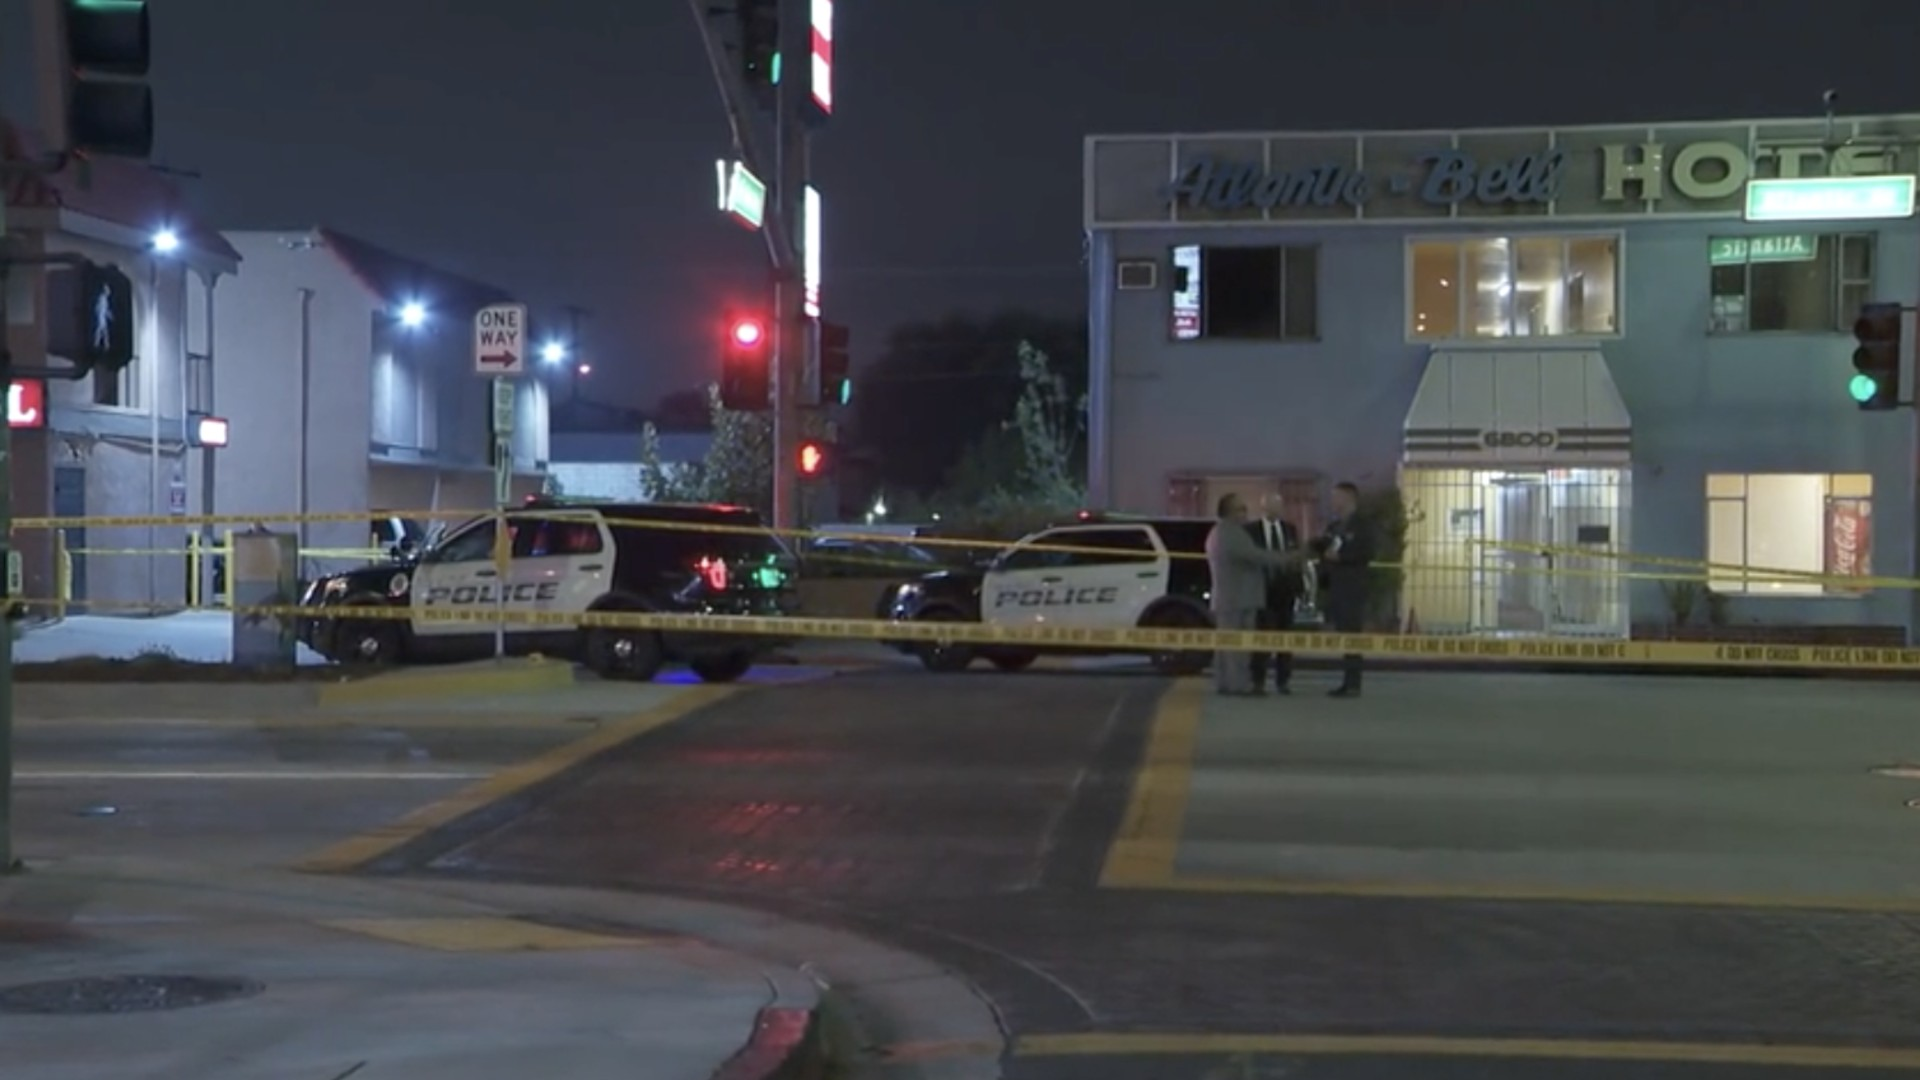 Authorities respond to a shooting involving Bell police officers on June 20, 2021. (KTLA)